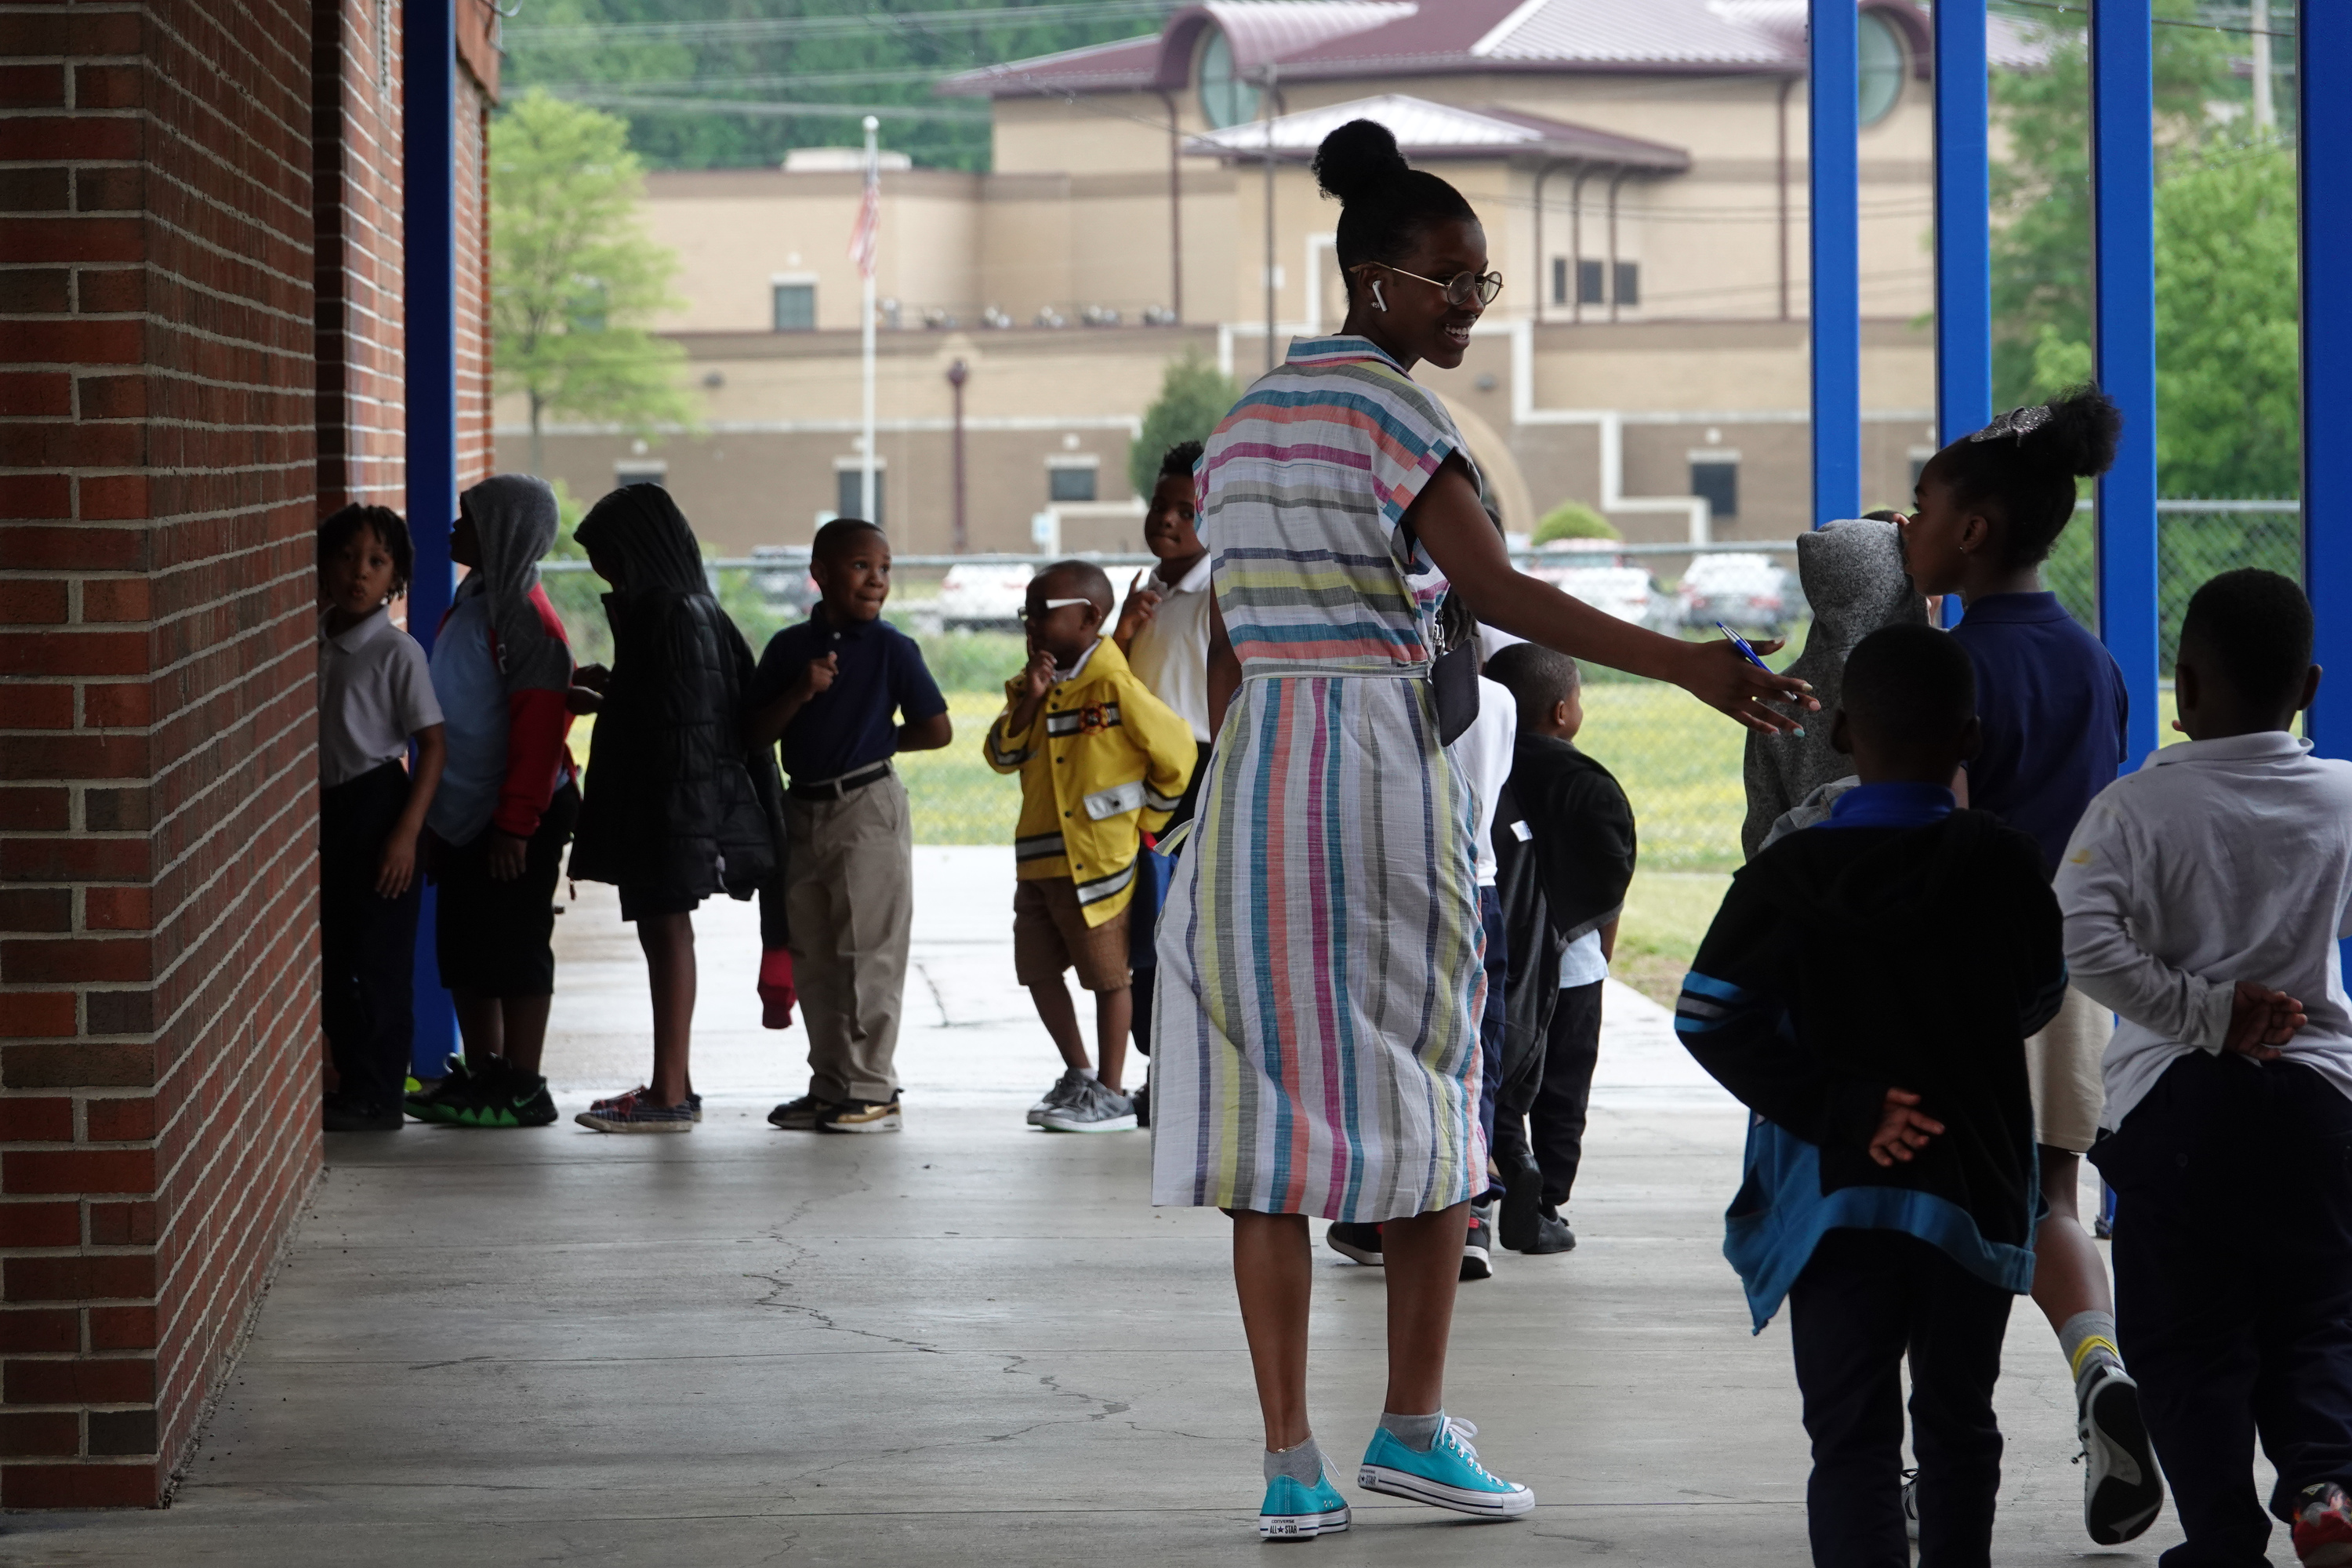 An elementary teacher walks with her student to another classroom outside.